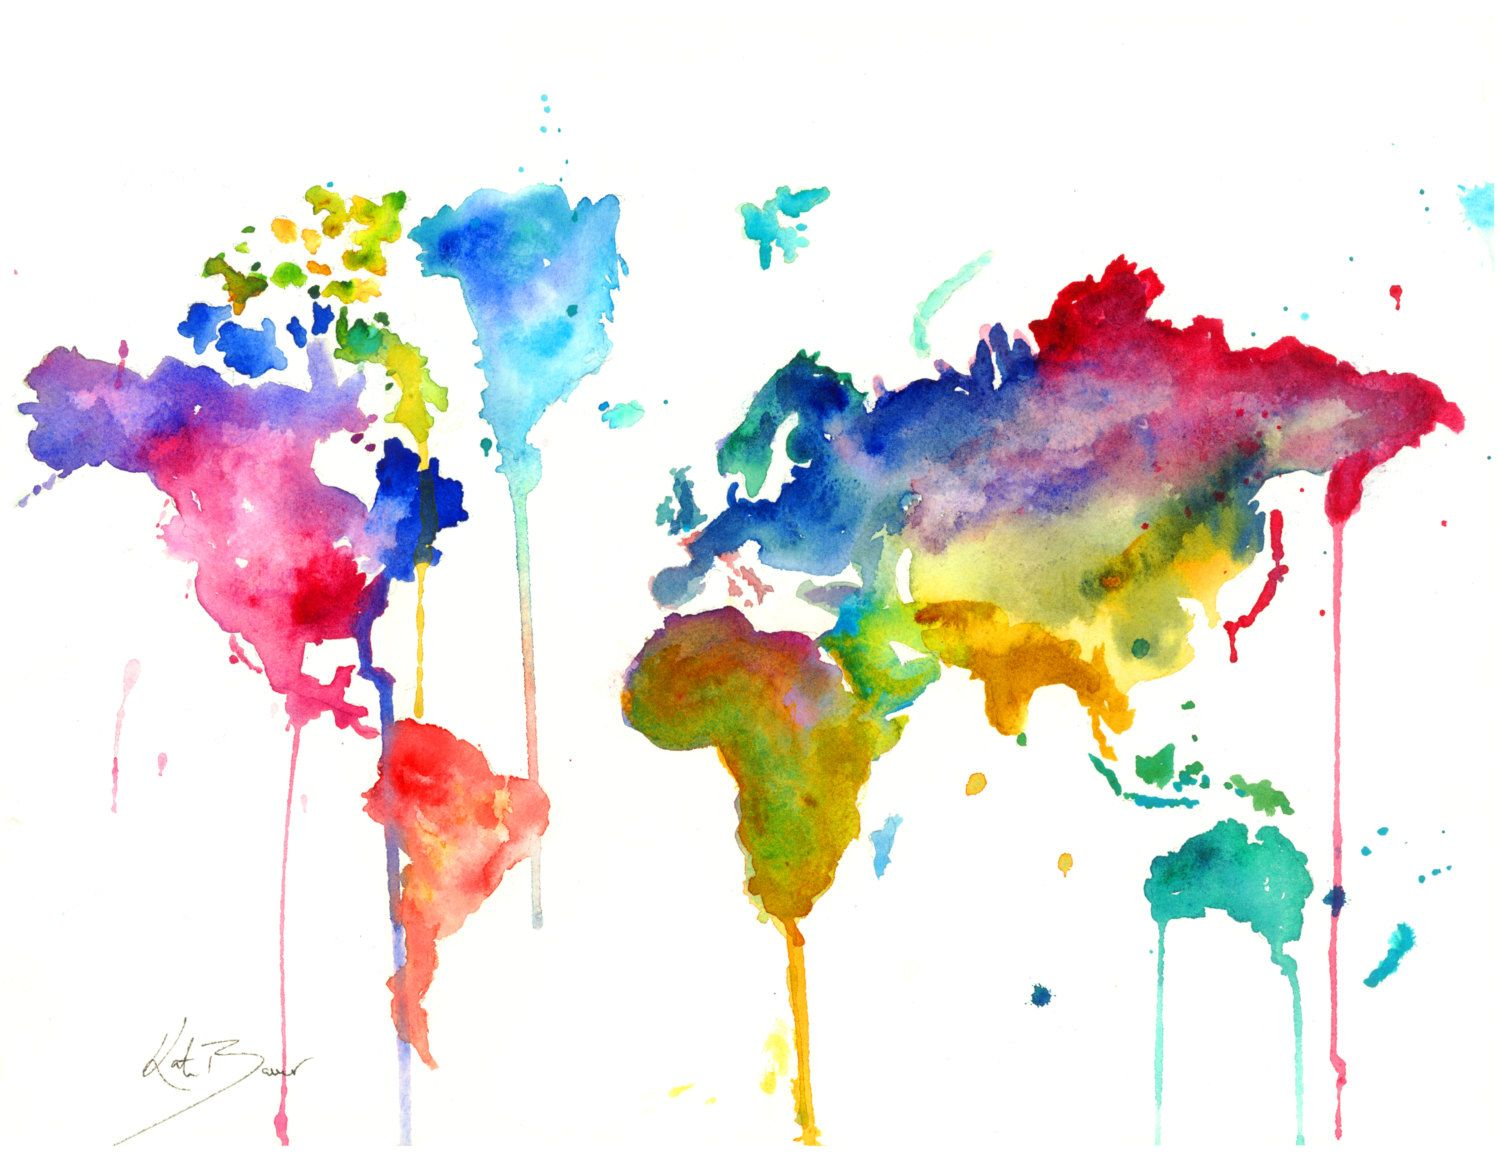 Love the dripping style wish list pinterest epson inkjet large scale archival map prints print of original watercolor map illustration gumiabroncs Gallery